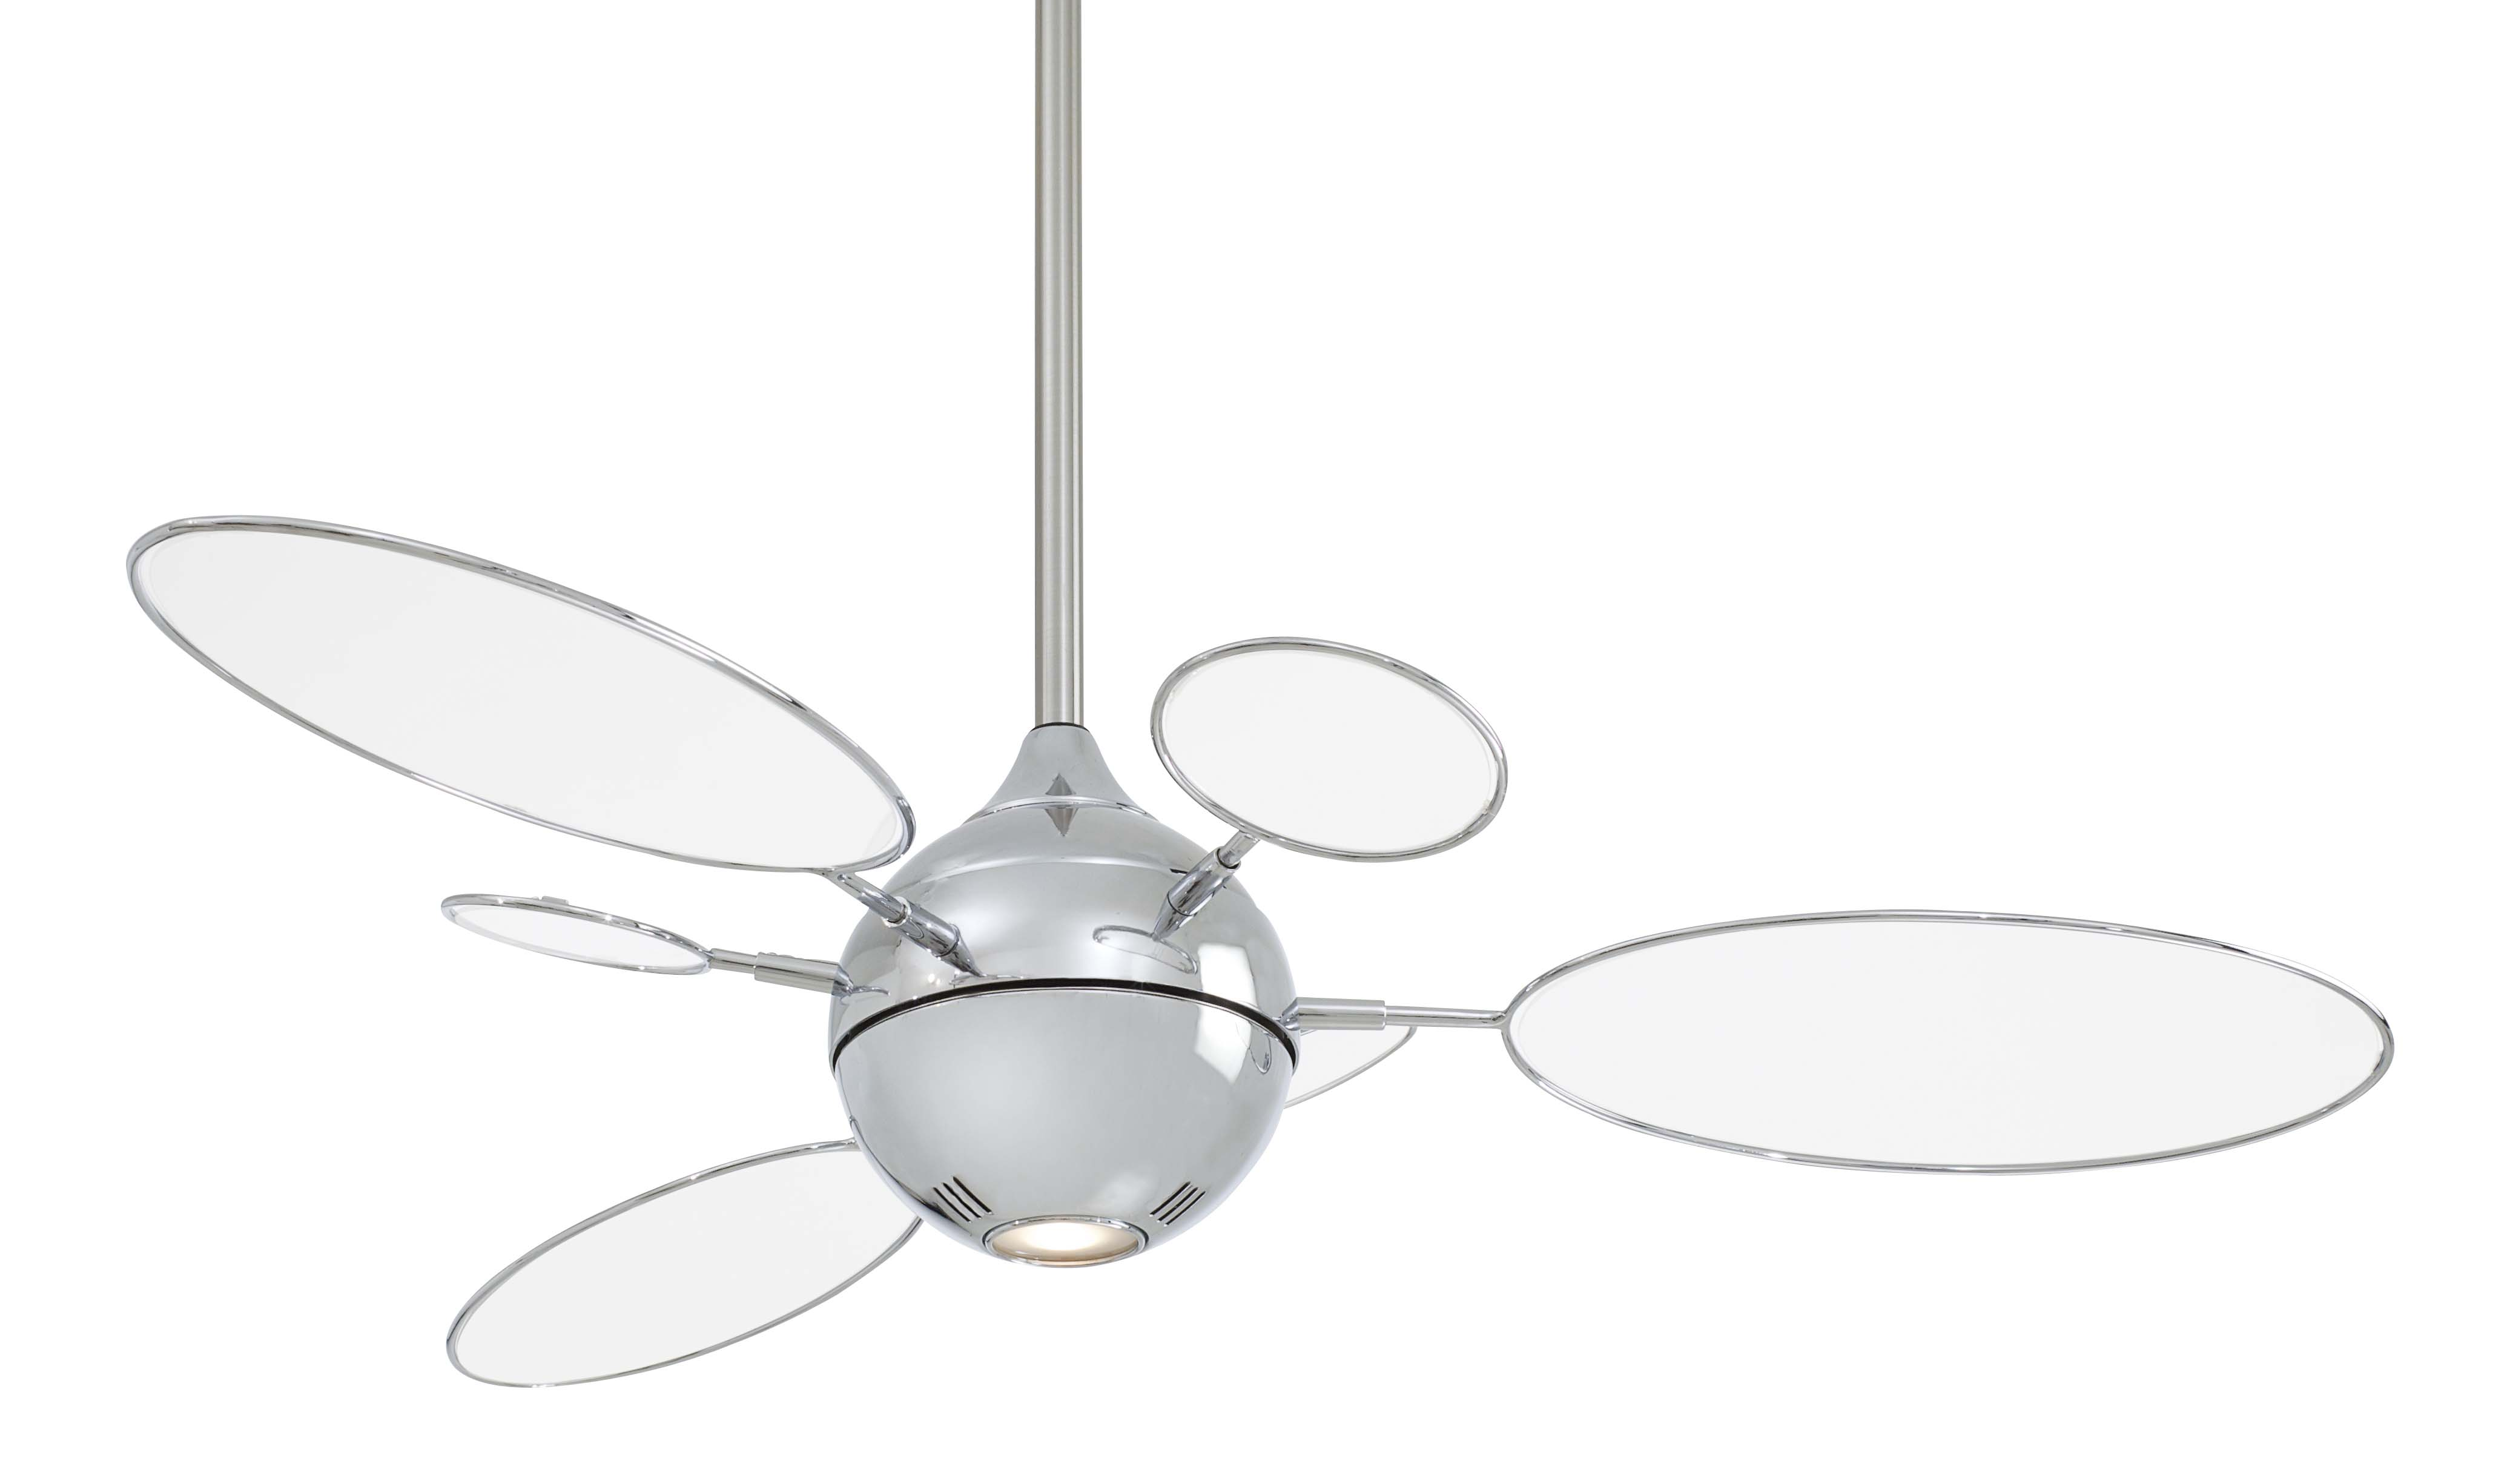 Great New Finishes For The Cirque Ceiling Fan